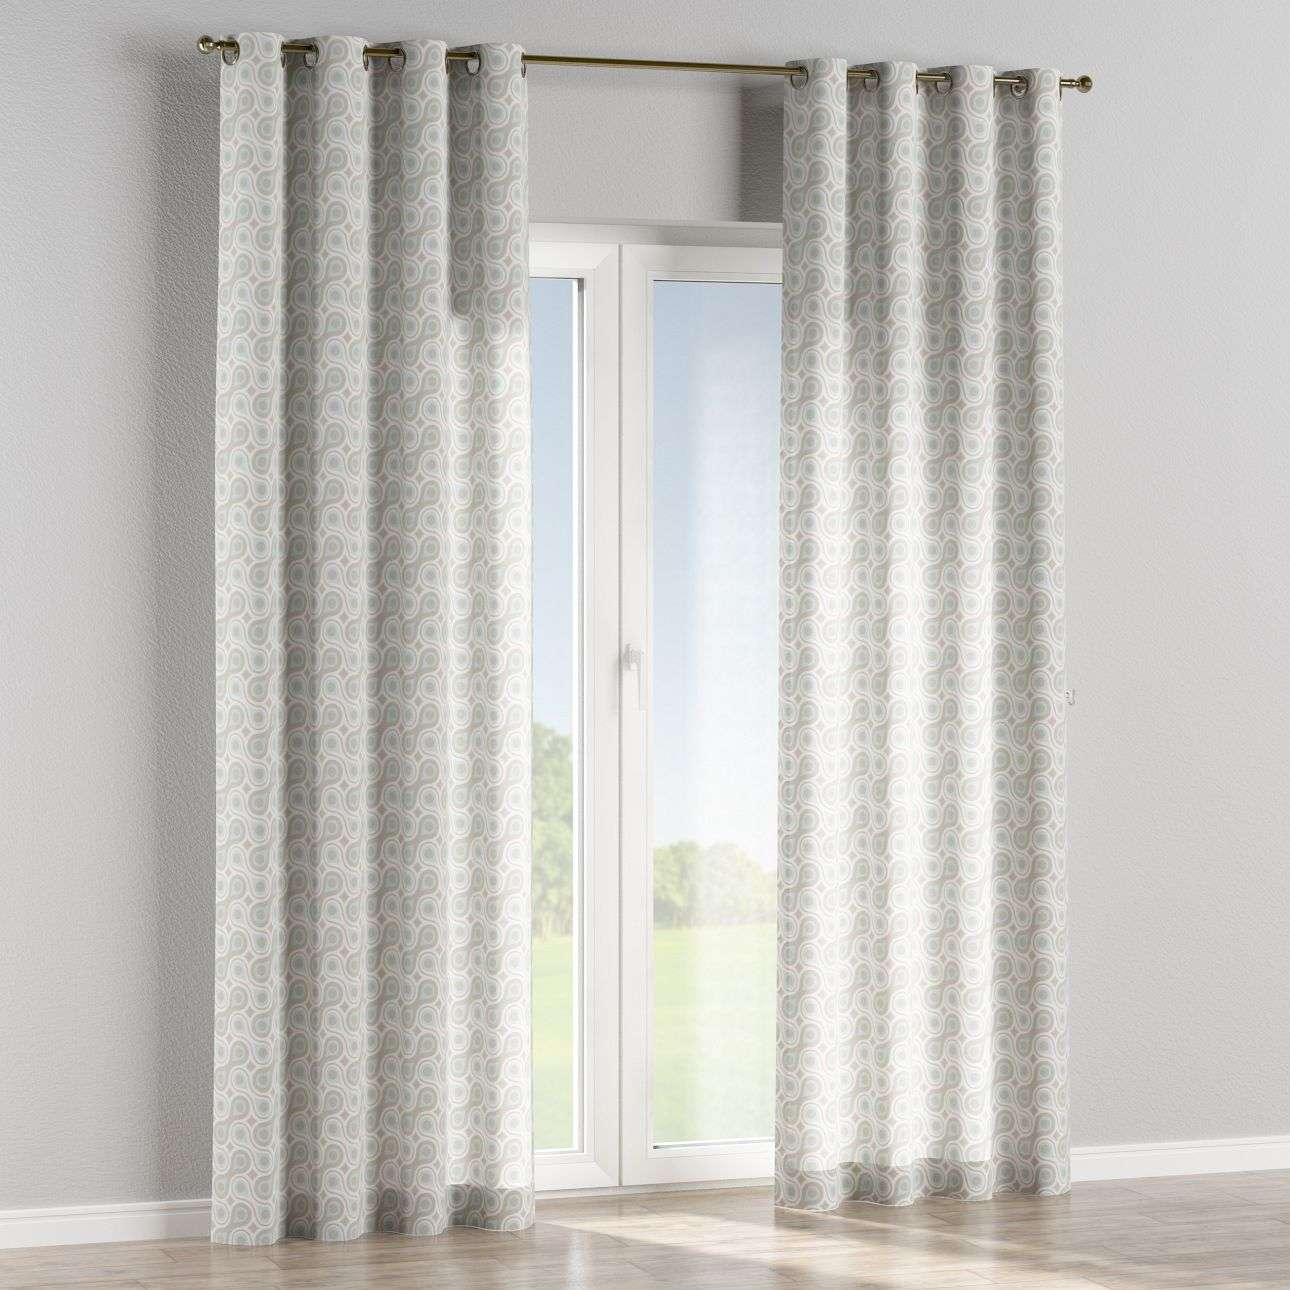 Eyelet curtains 130 x 260 cm (51 x 102 inch) in collection Flowers, fabric: 311-13